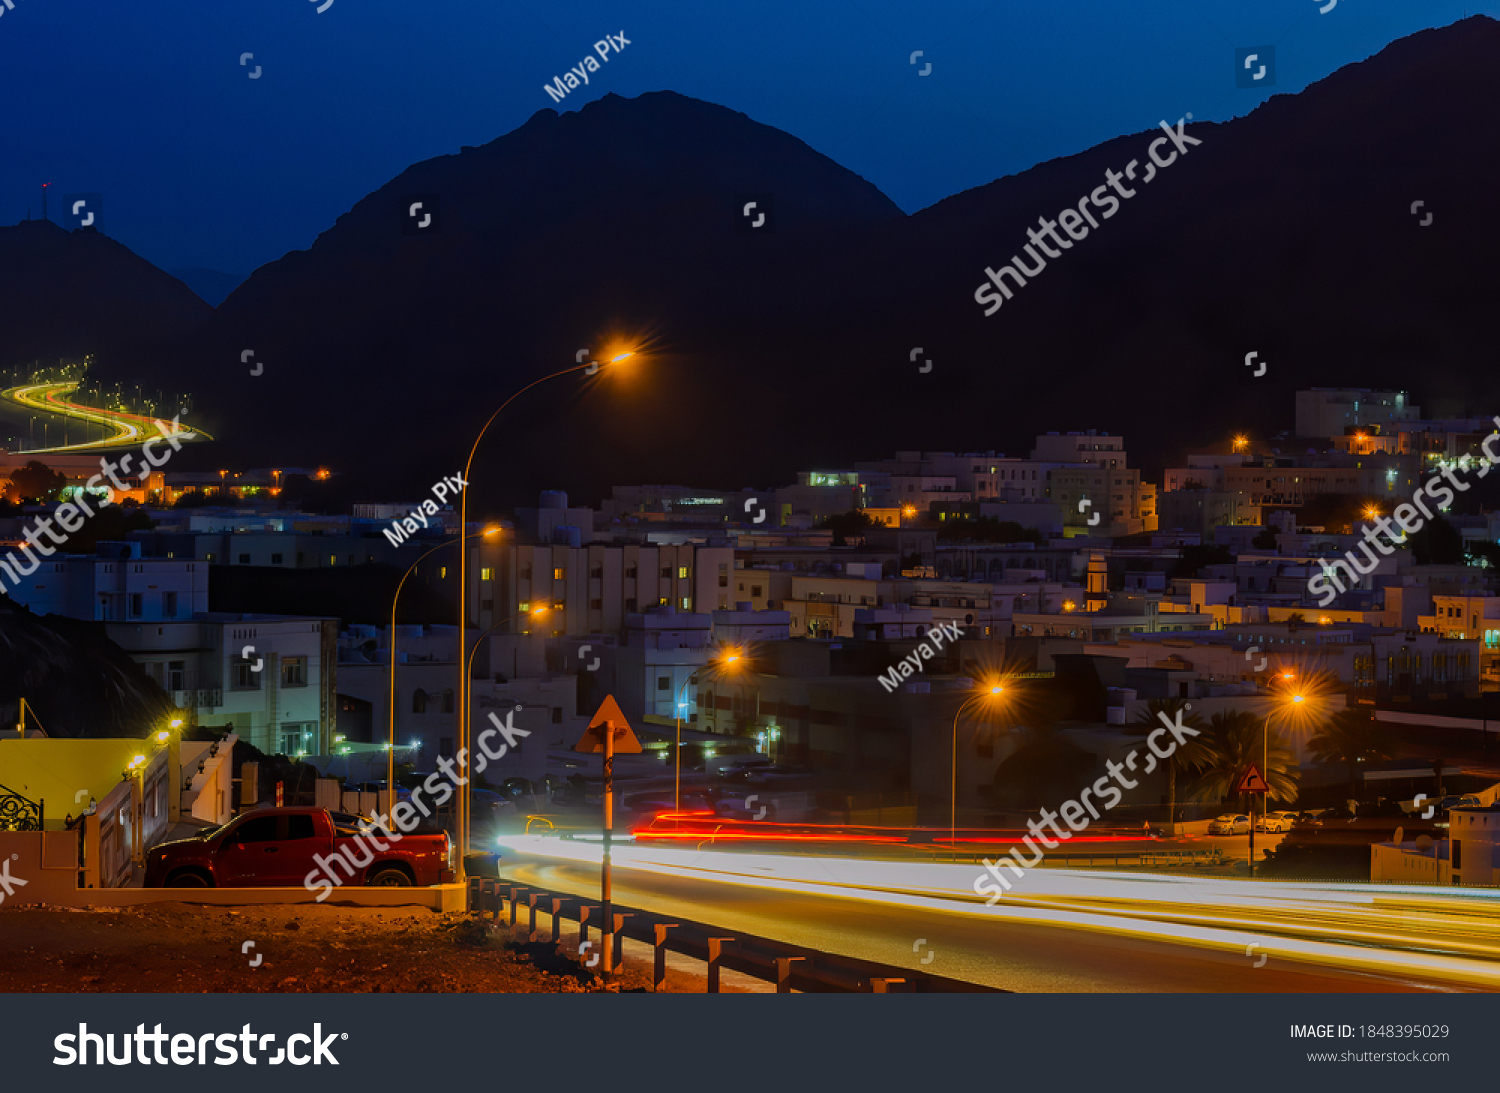 Car Motion Trails on a peaceful night in a small town in Muscat, Oman.